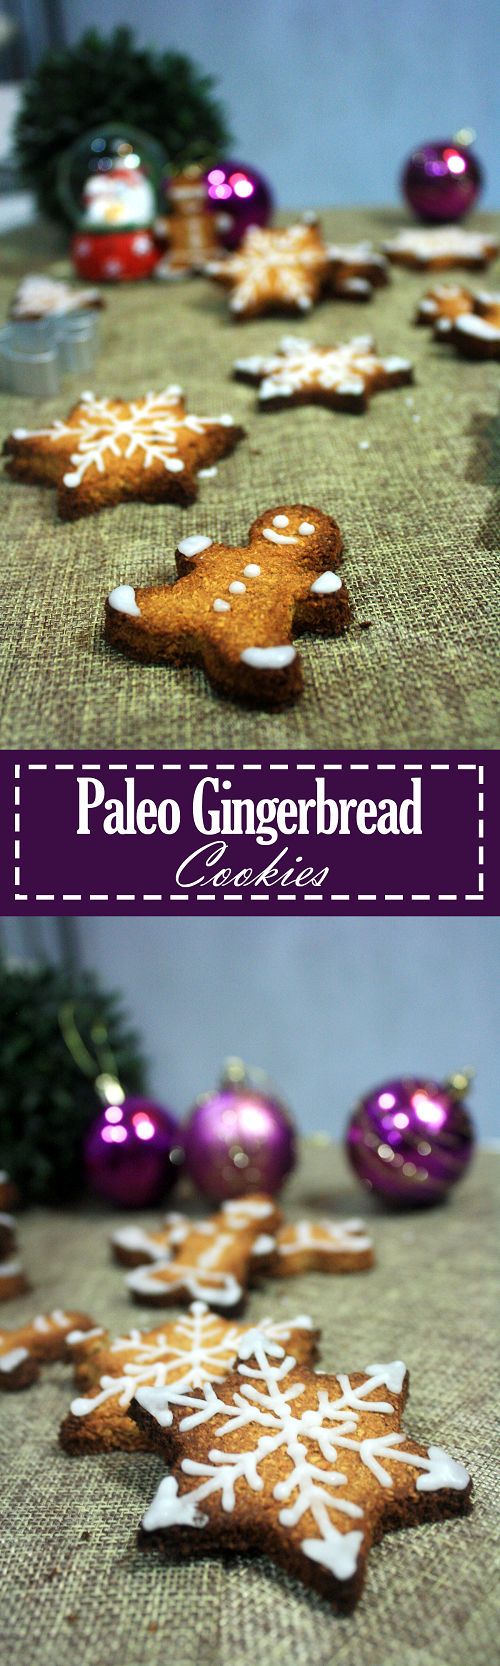 Paleo Gingerbread Cookies with Icing by Summer Day Naturals